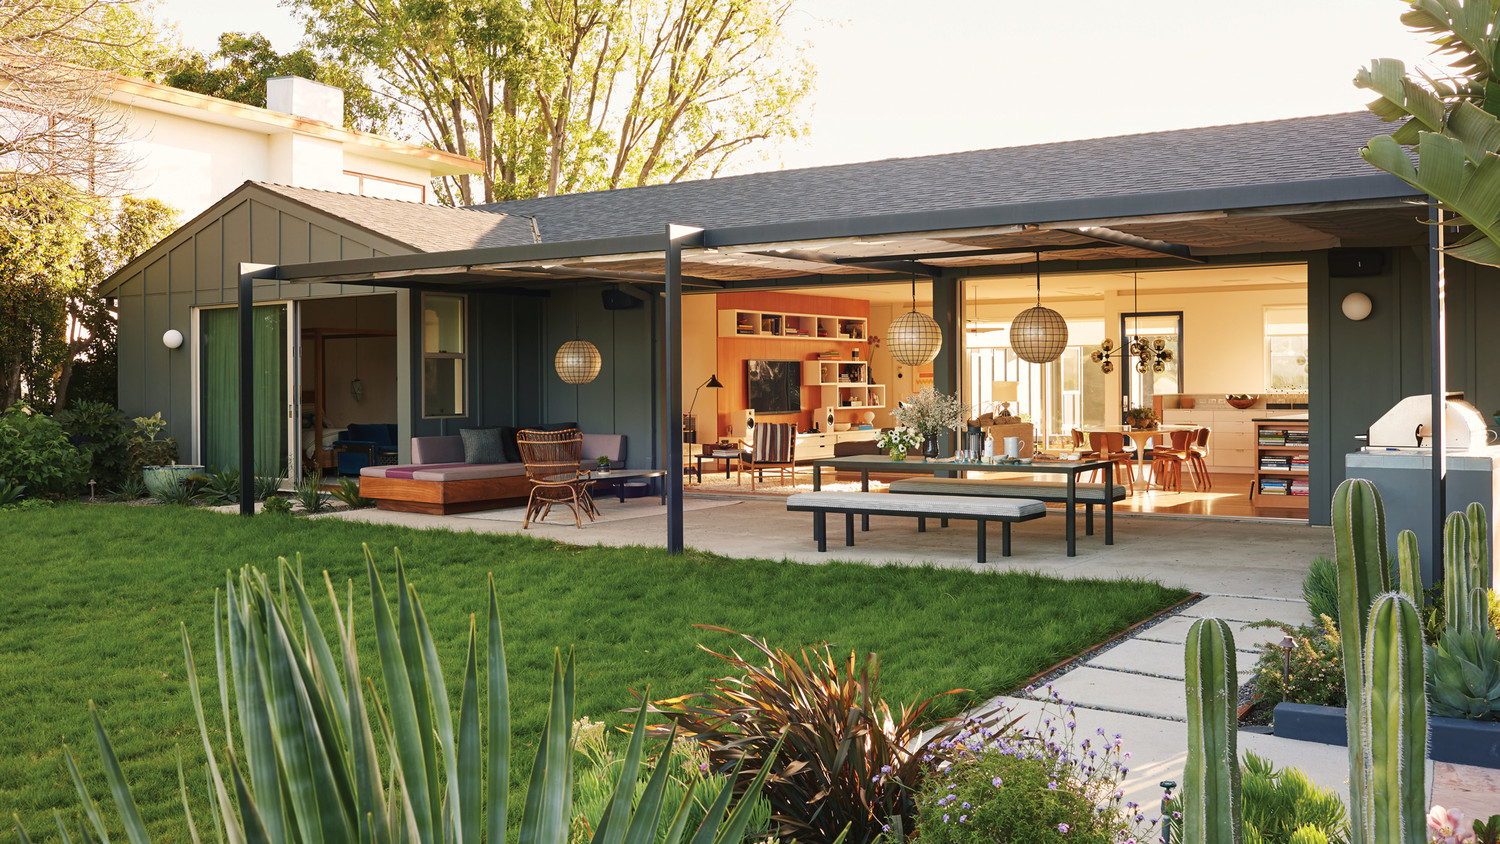 Take A Look Inside This Stunning La Ranch House Martha